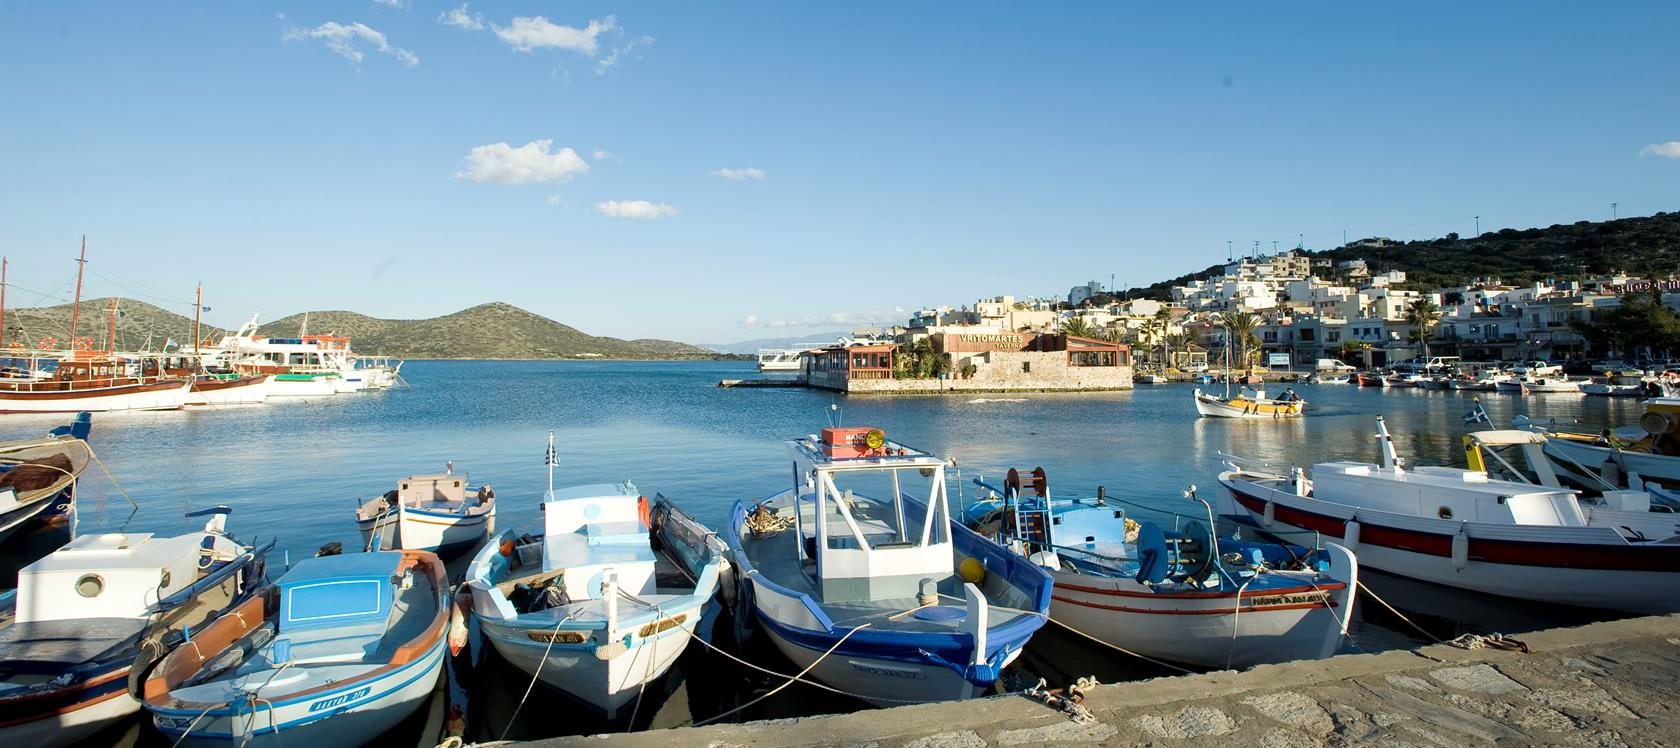 Elounda and its piqteresque harbor